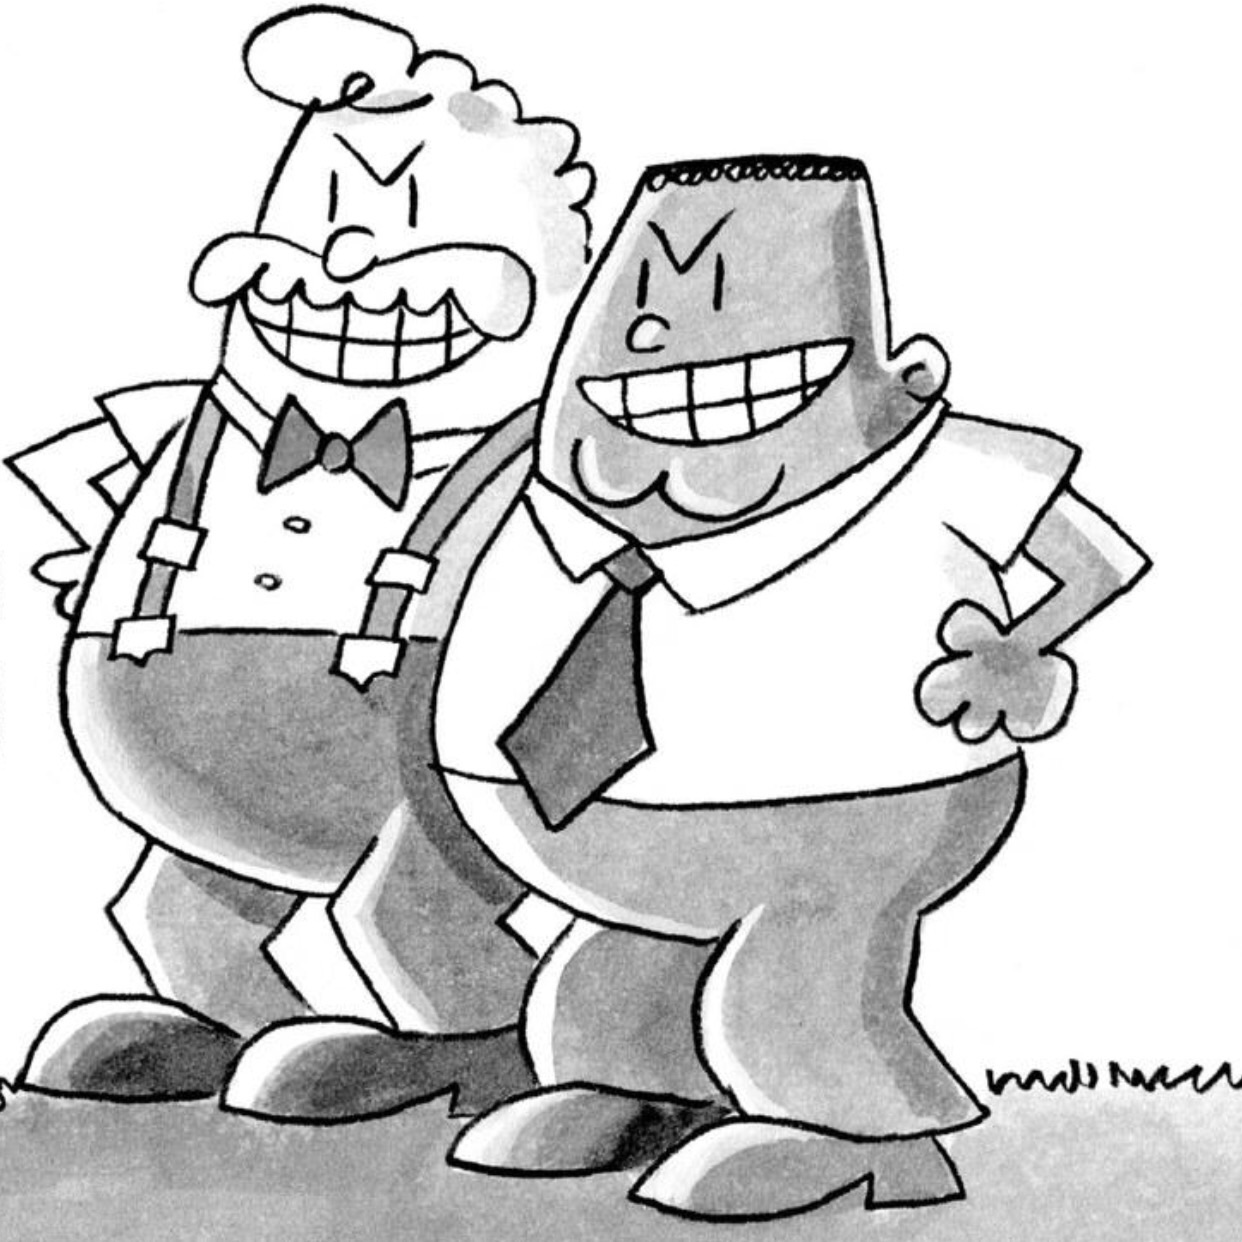 image george and harold jpg captain underpants wiki